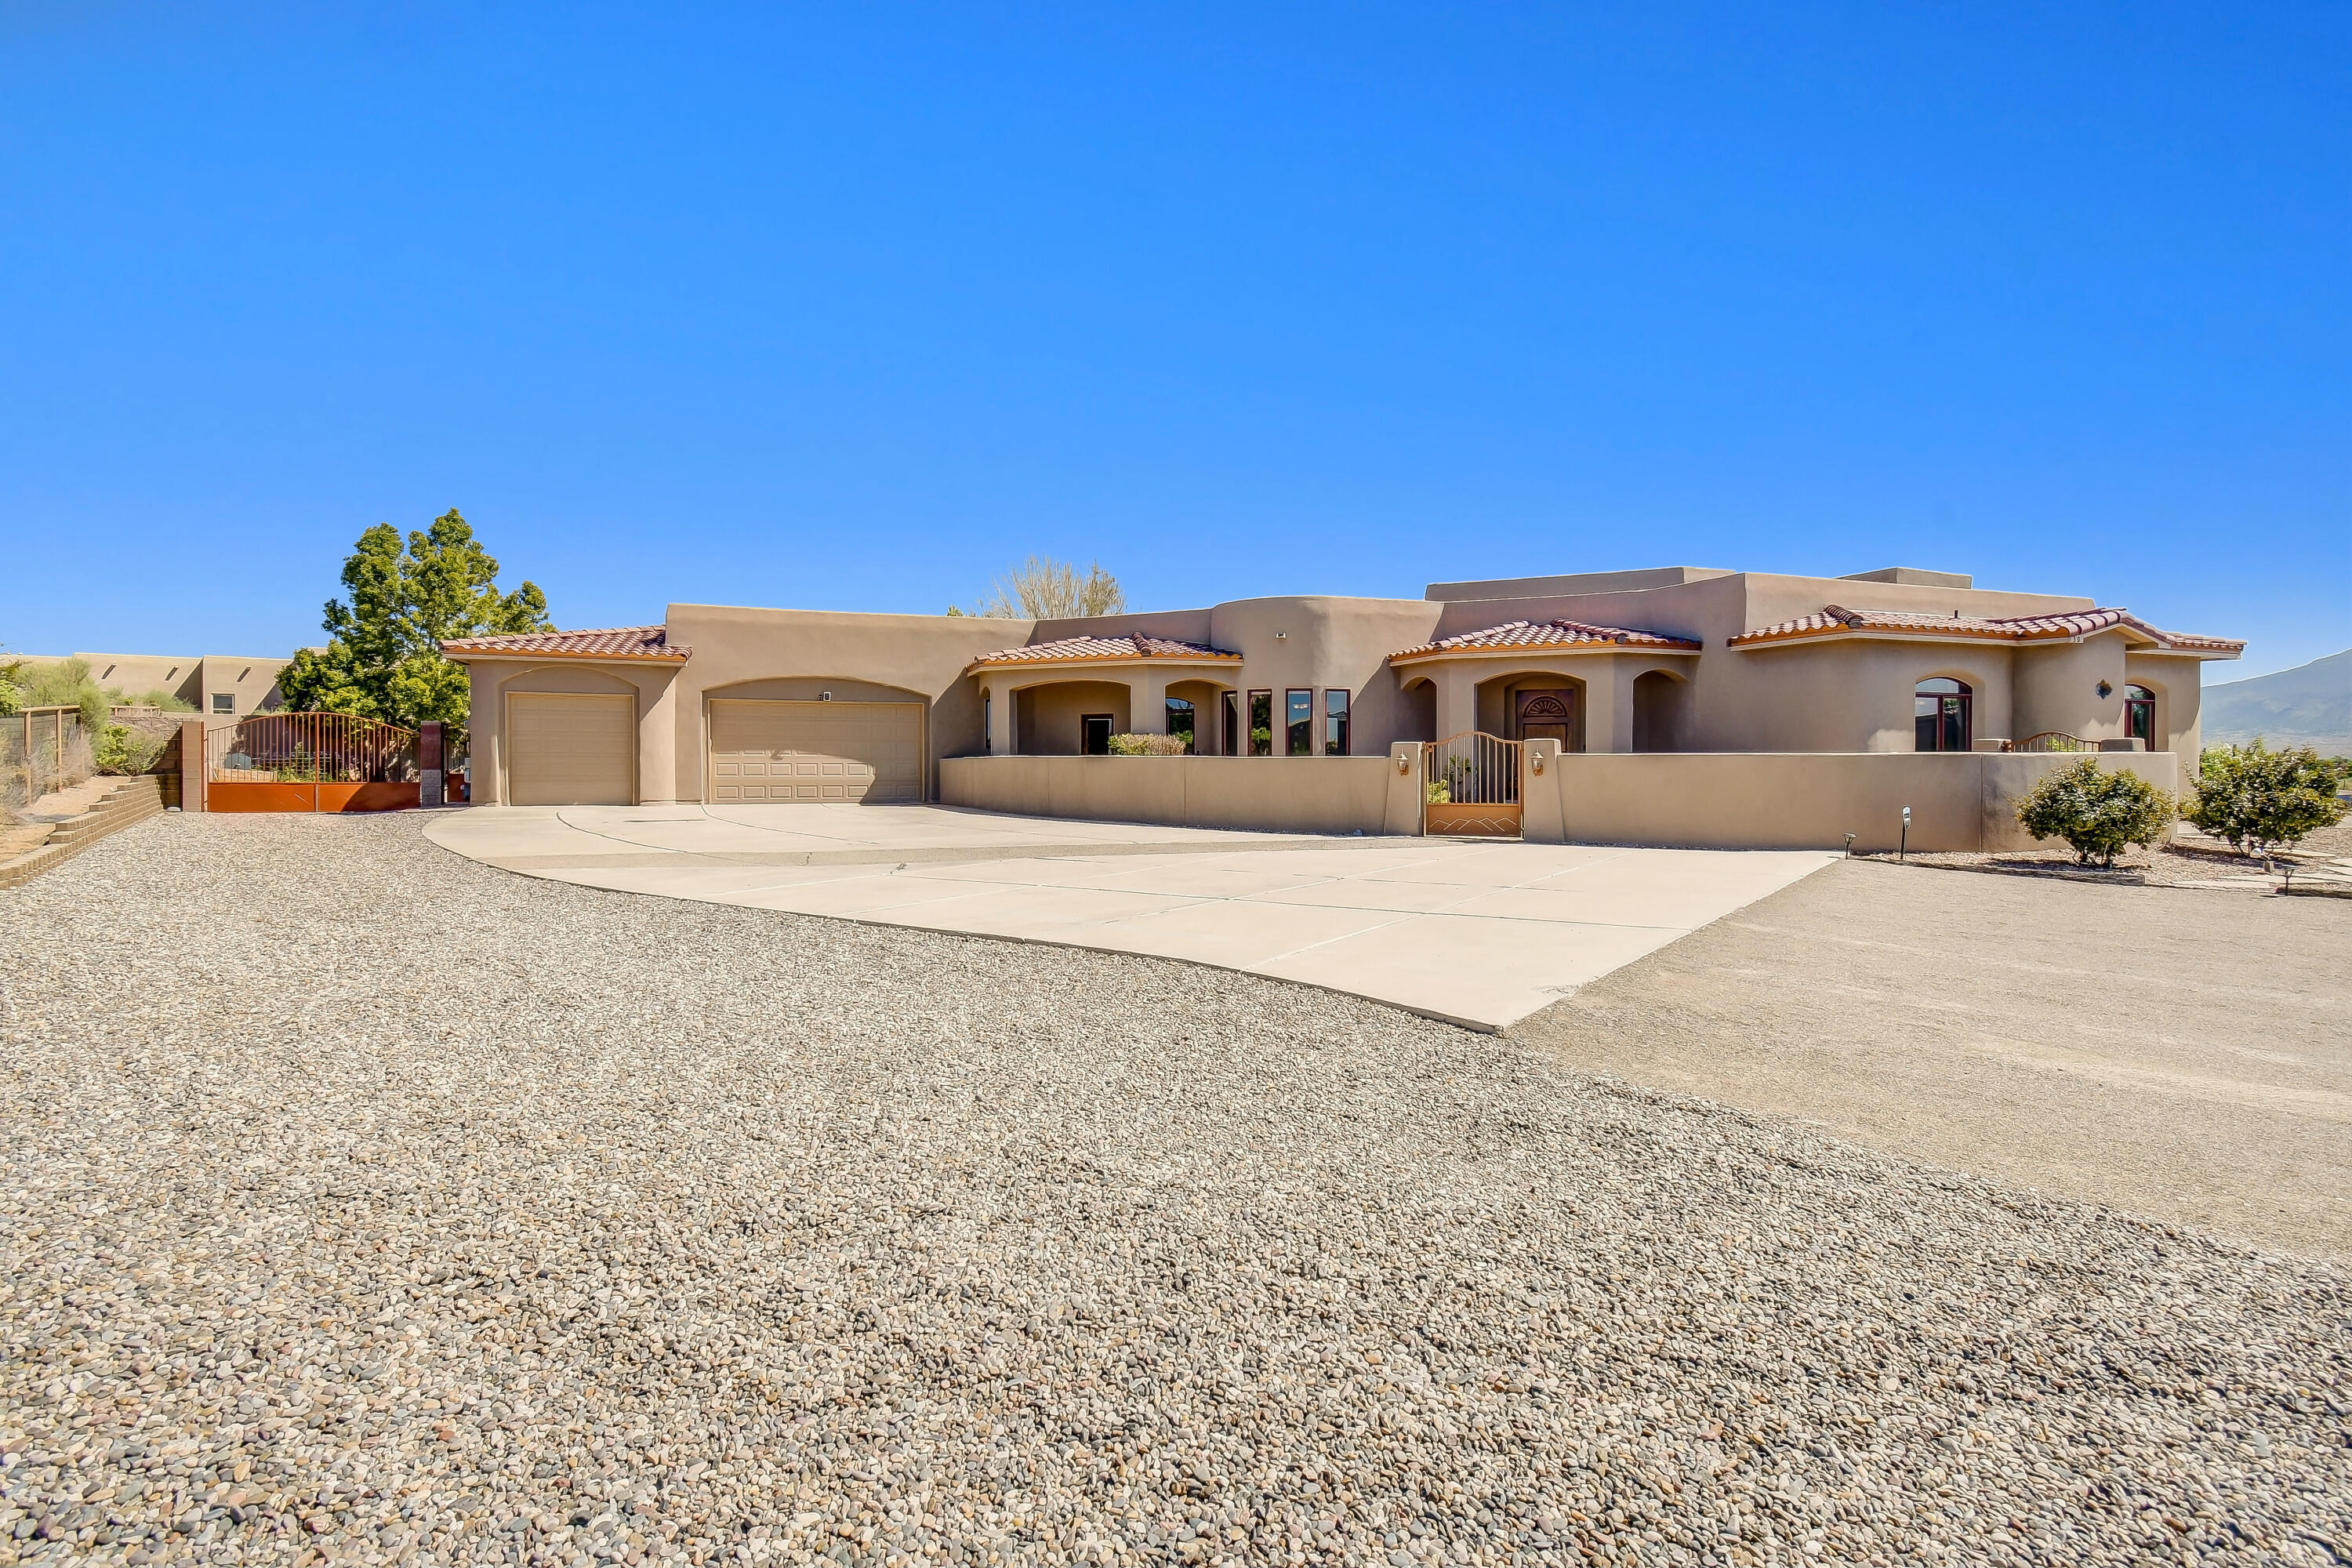 Corrales at it's finest.  This custom built home is situated on a large lot with breathtaking Sandia mountain views.  Floorplan features 4 bedrooms and an office with it's own entrance.  Natural light pours into the kitchen which features custom cherry cabinets, a large island, bar top and prep sink.  Detailed woodwork and large fireplace invite you in to enjoy cozy evenings.  Oversized outdoor kitchen area is a dream for entertaining.  Perfectly landscaped with  grass, a newly added pool and side yard access! Conveniently located off of 528, do not miss your chance, come see us today.